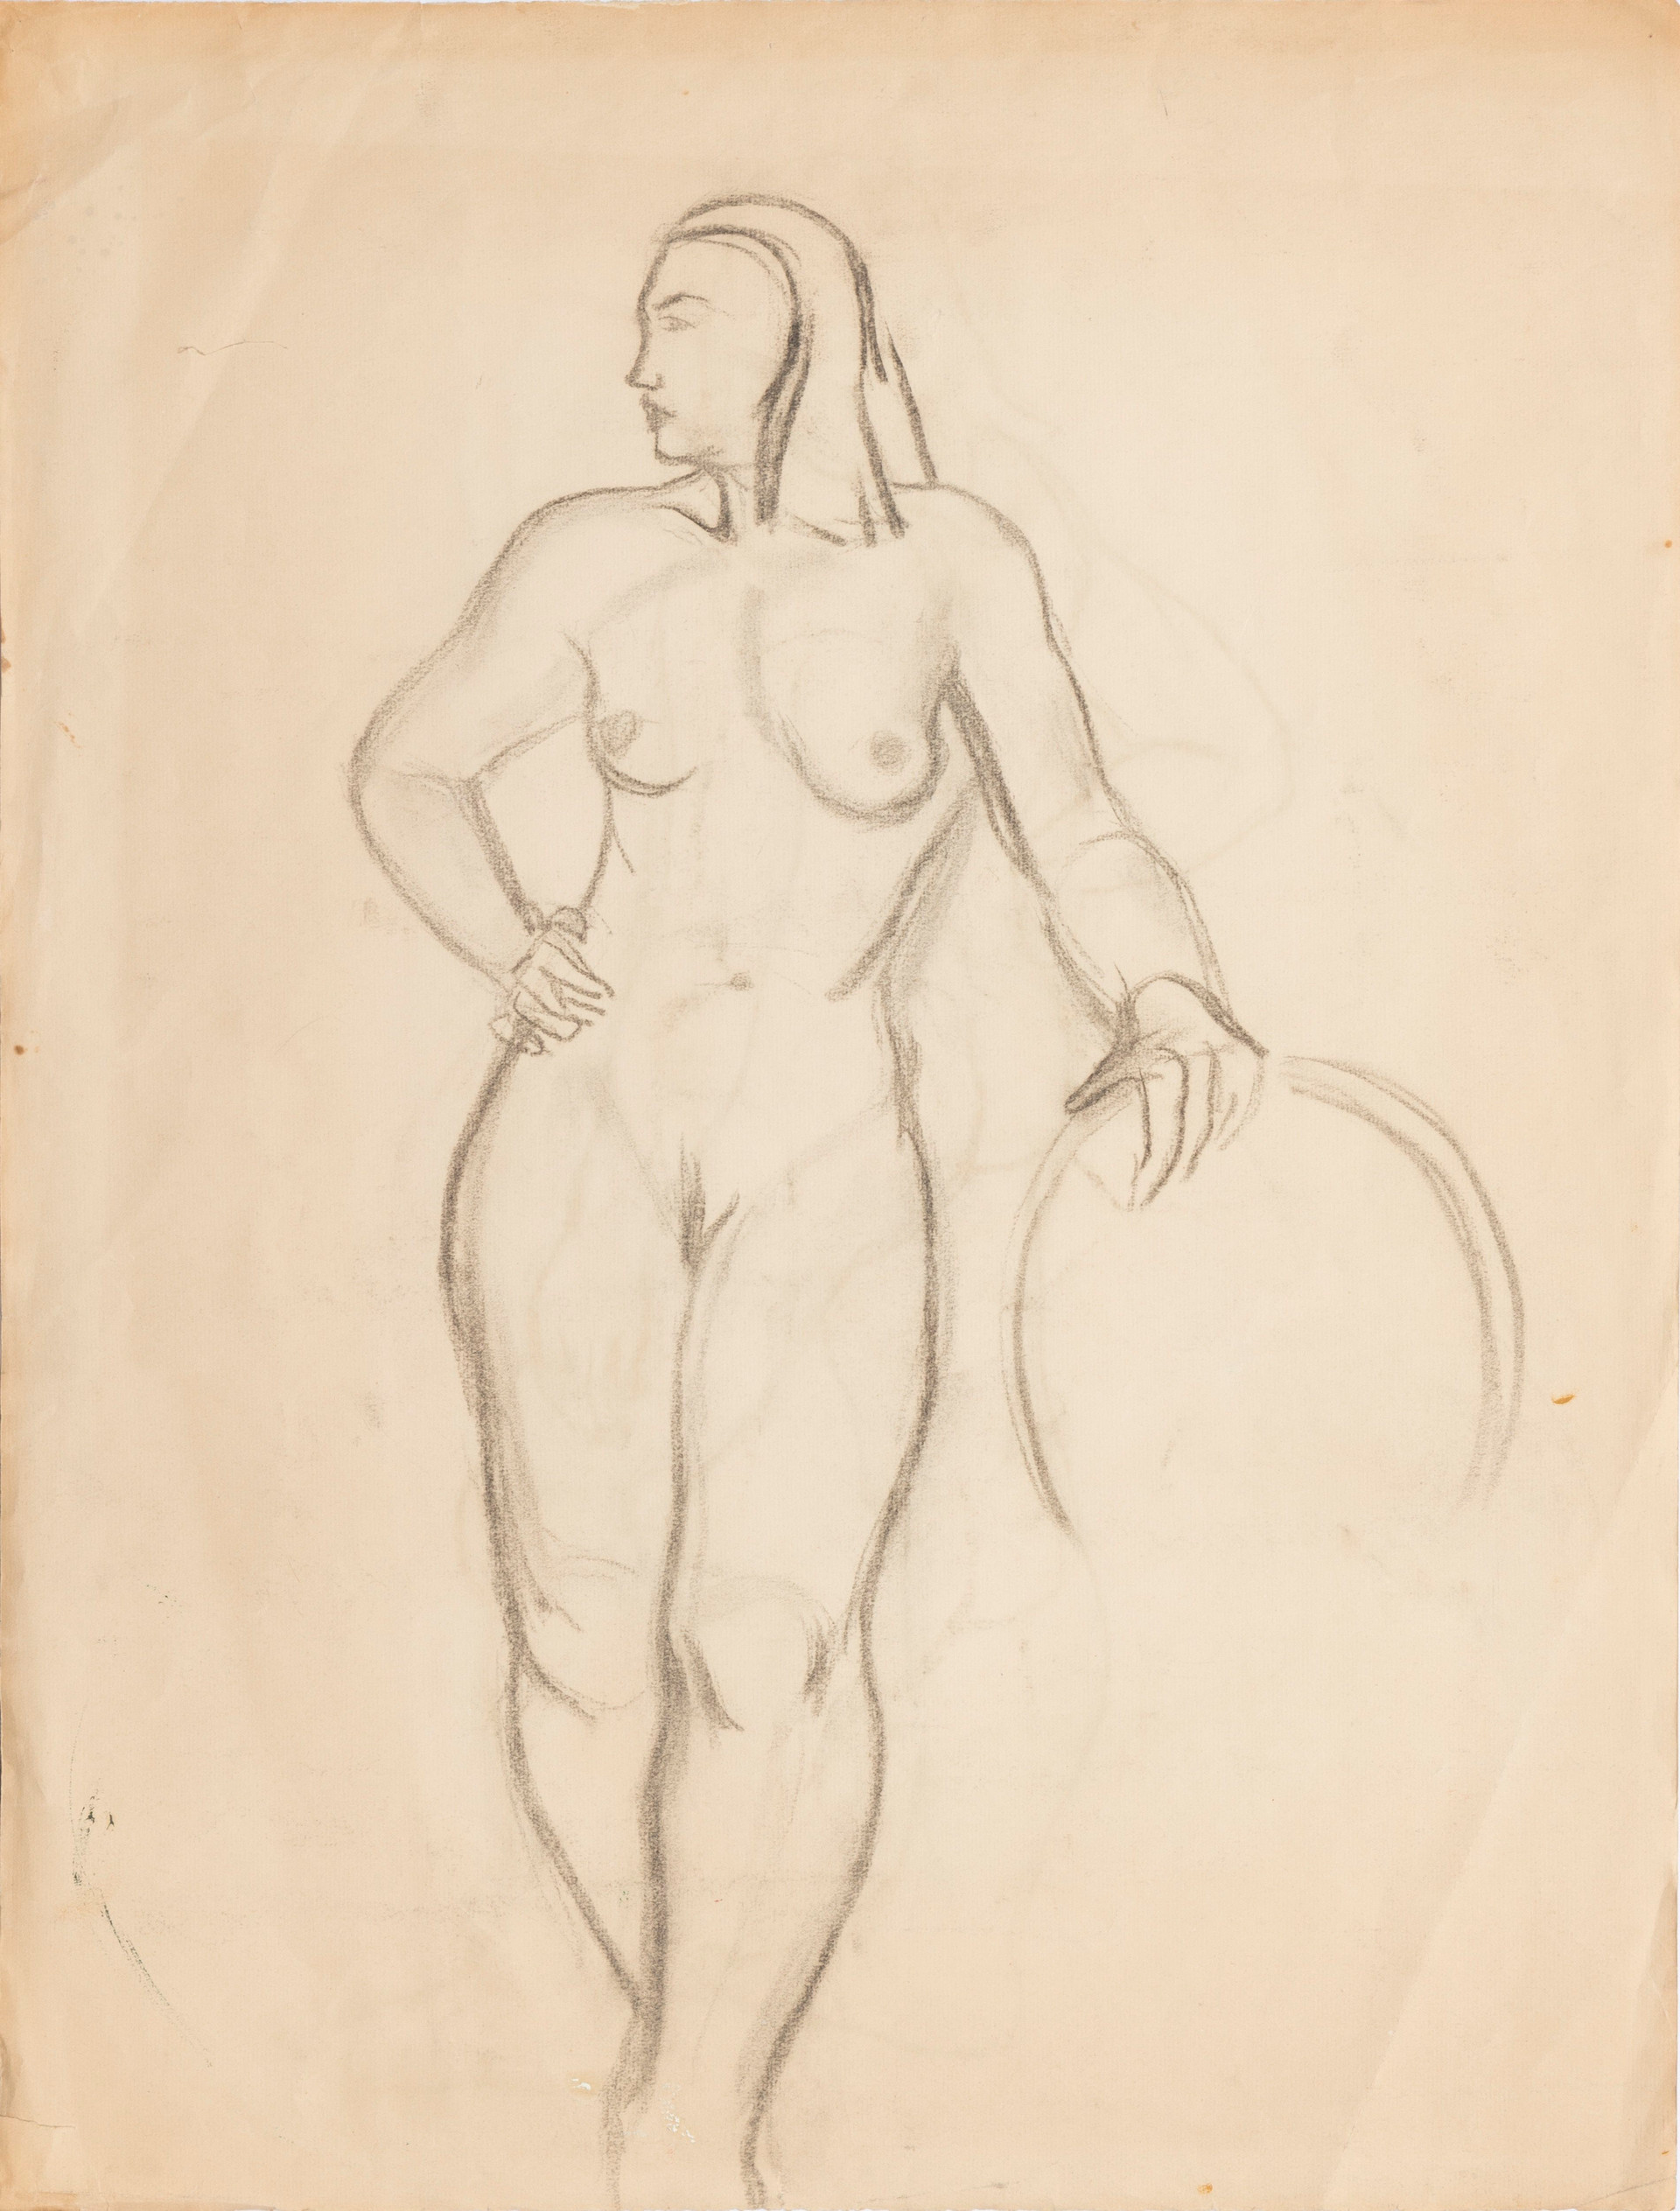 Untitled sketch - nude female figure standing with a round object and the back of the figure (front)